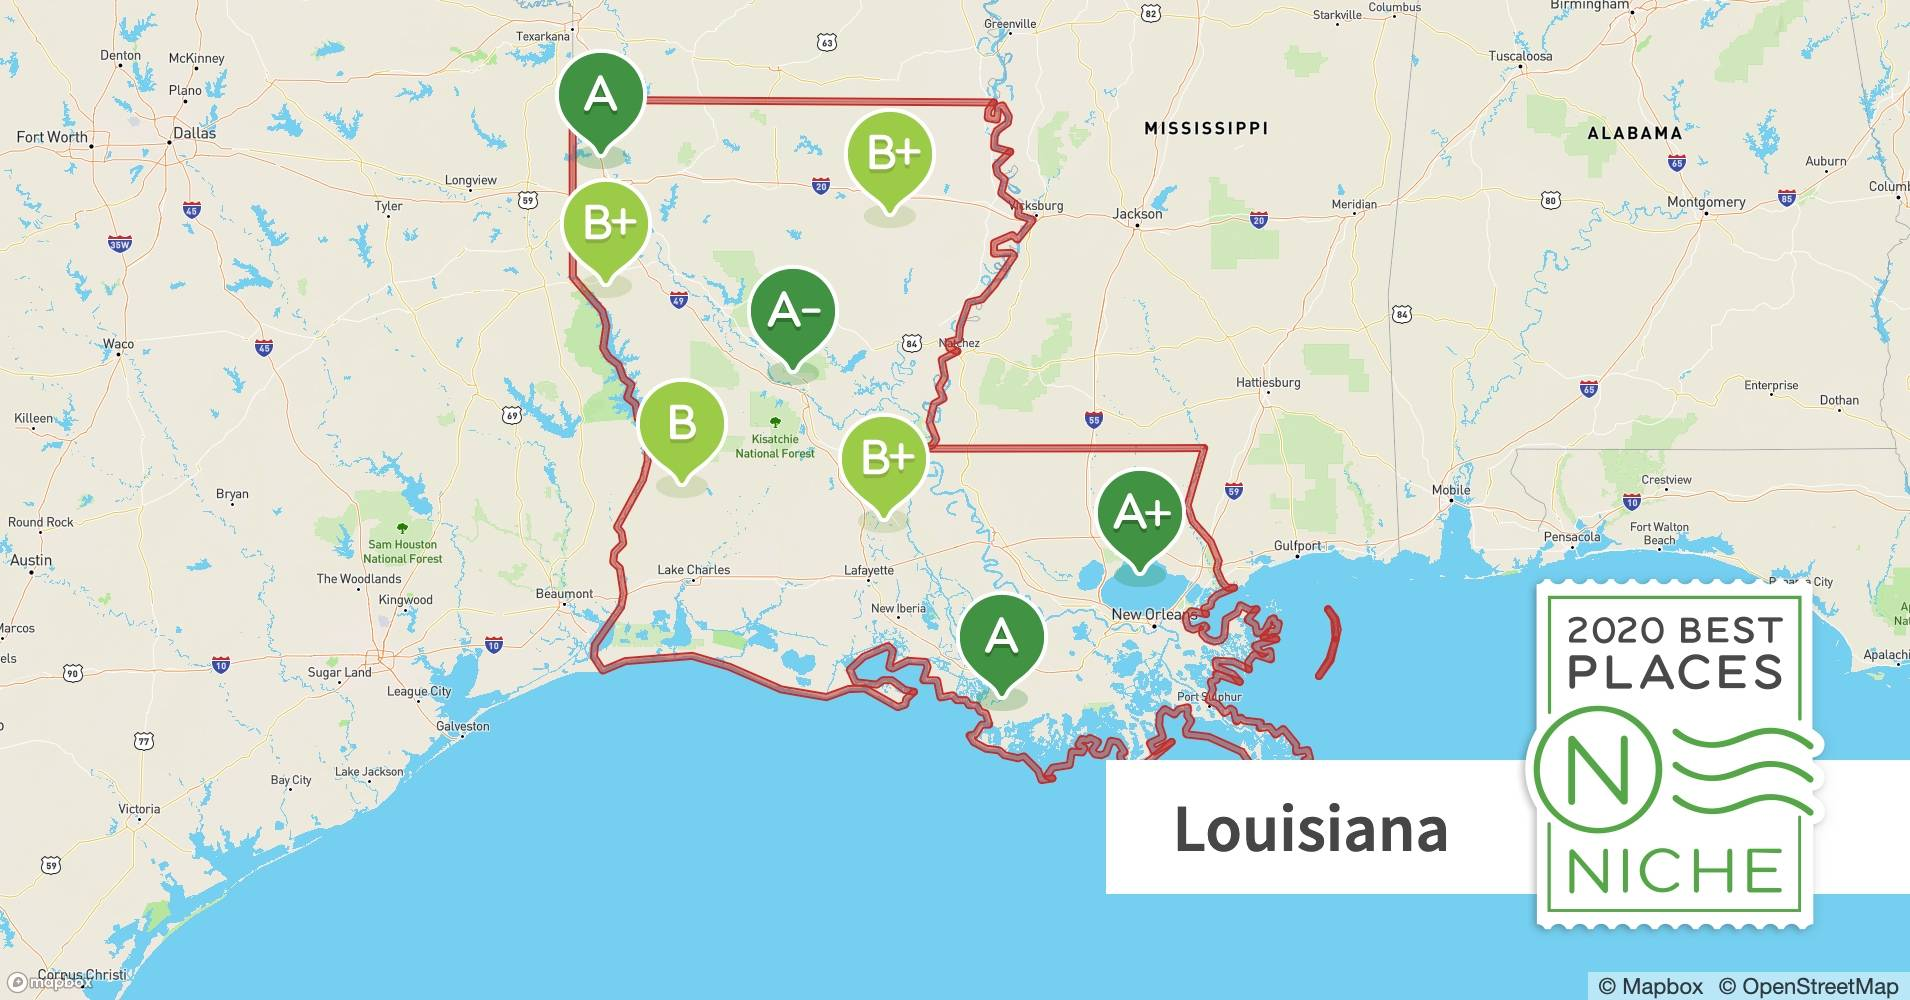 2020 Best Places To Raise A Family In Louisiana Niche